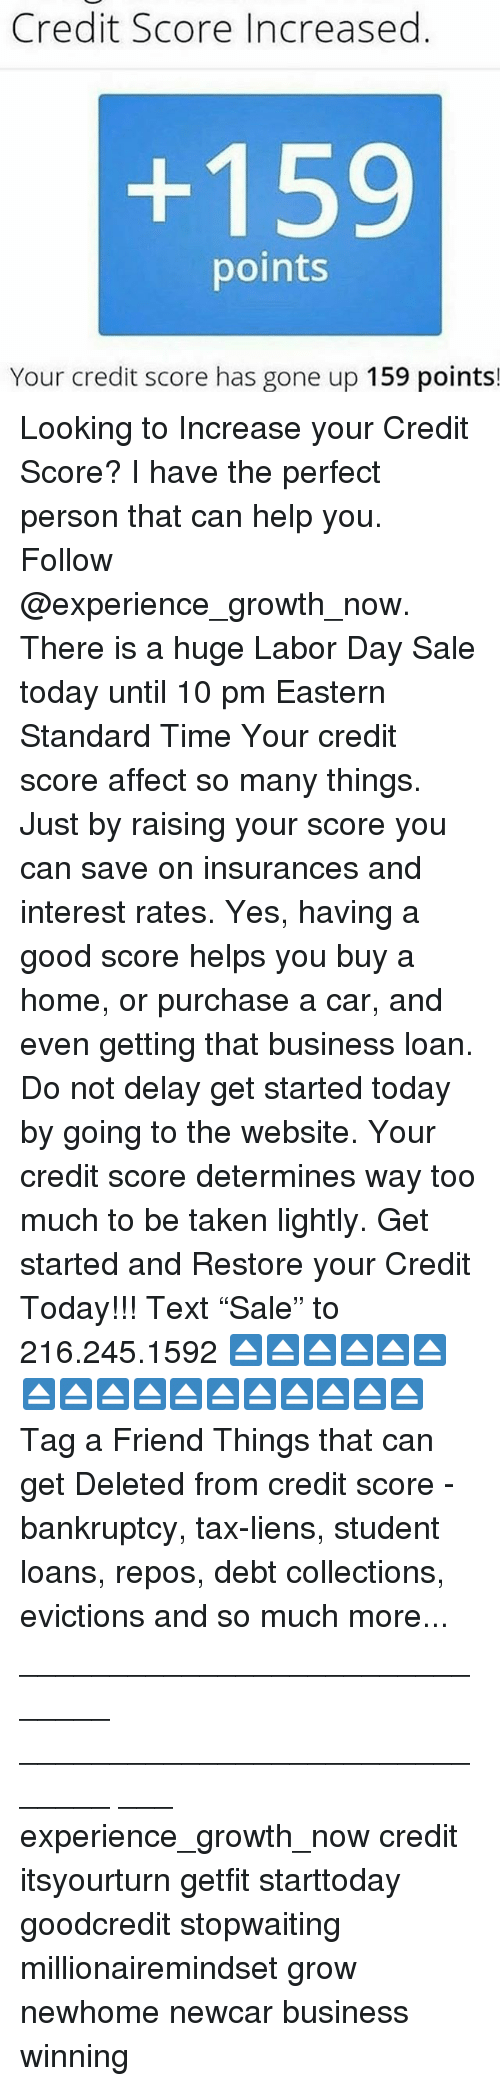 HOW TO GET YOUR CREDIT SCORE UP 10 POINTS FAST